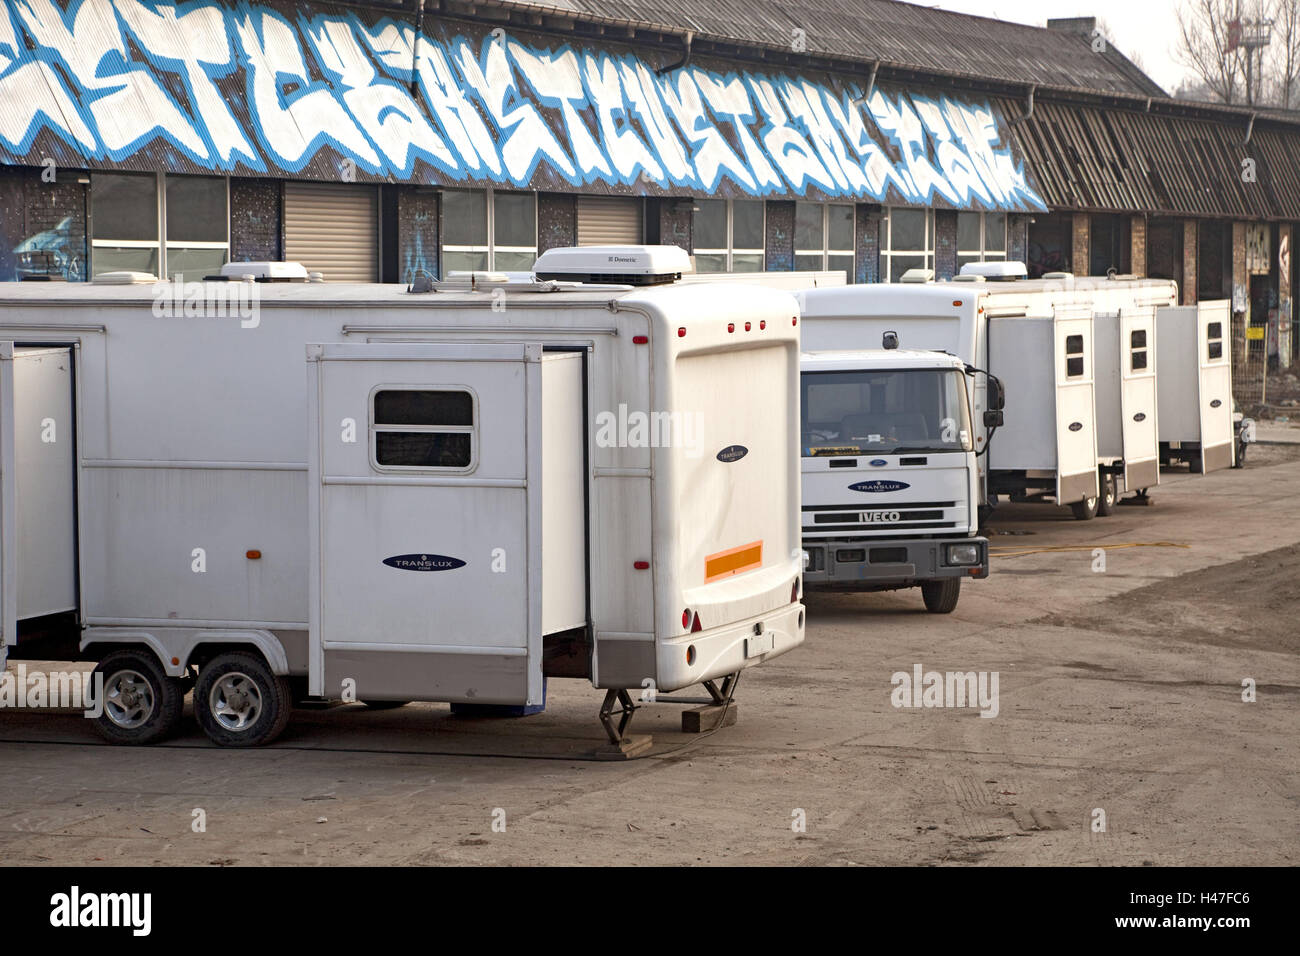 truck vehicle germany europe stockfotos truck vehicle germany europe bilder alamy. Black Bedroom Furniture Sets. Home Design Ideas